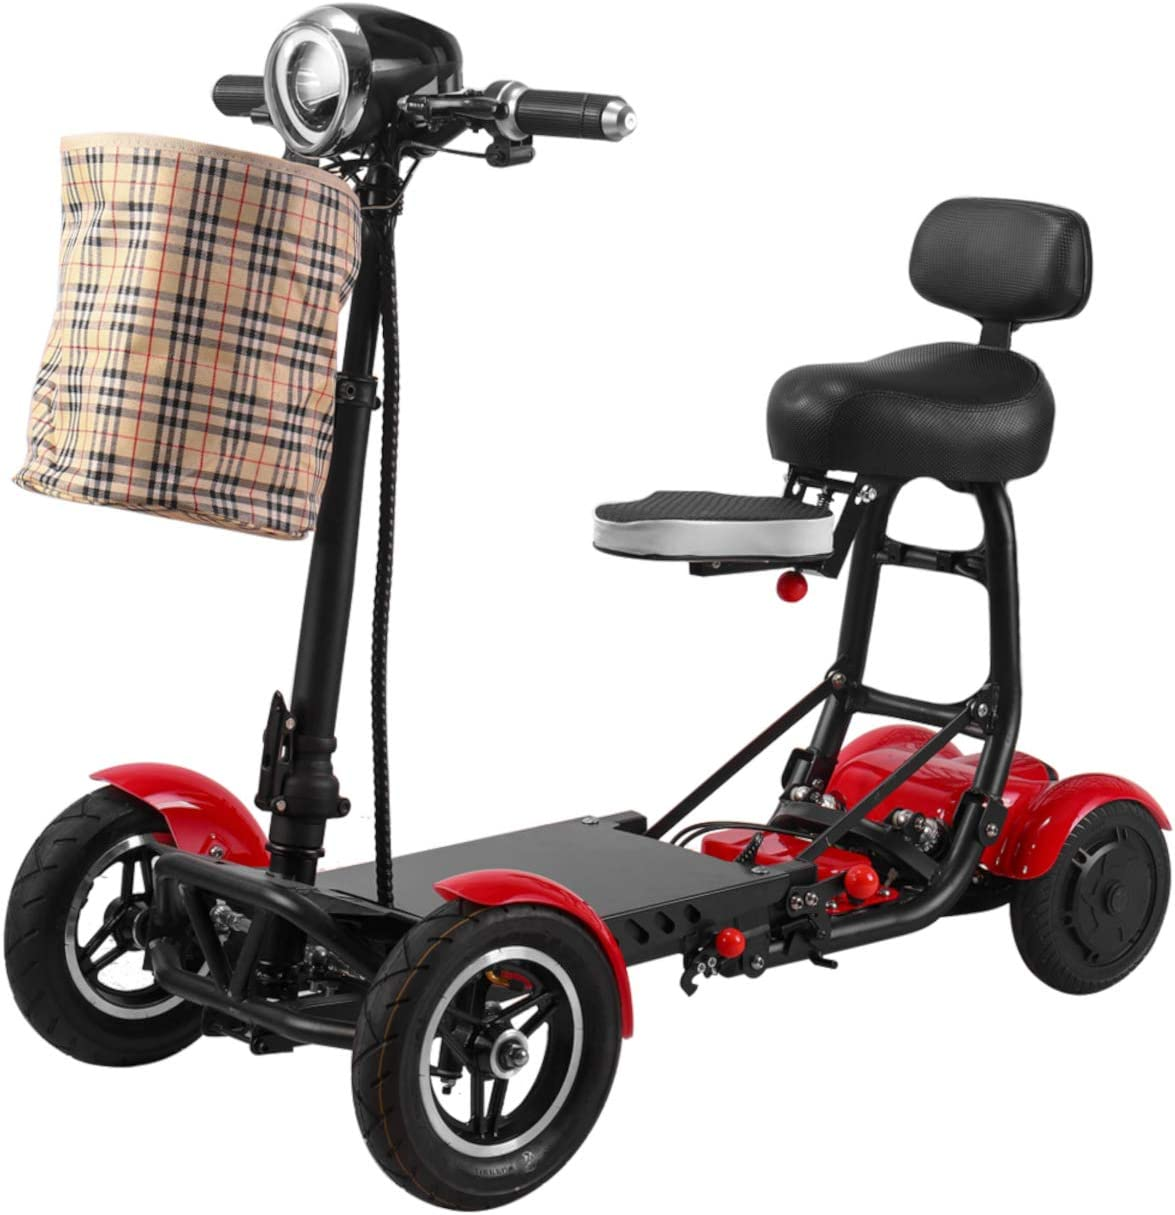 Dragon low-pricing Mobile Foldable Lightweight Power Scooters El Easy Travel 4 years warranty